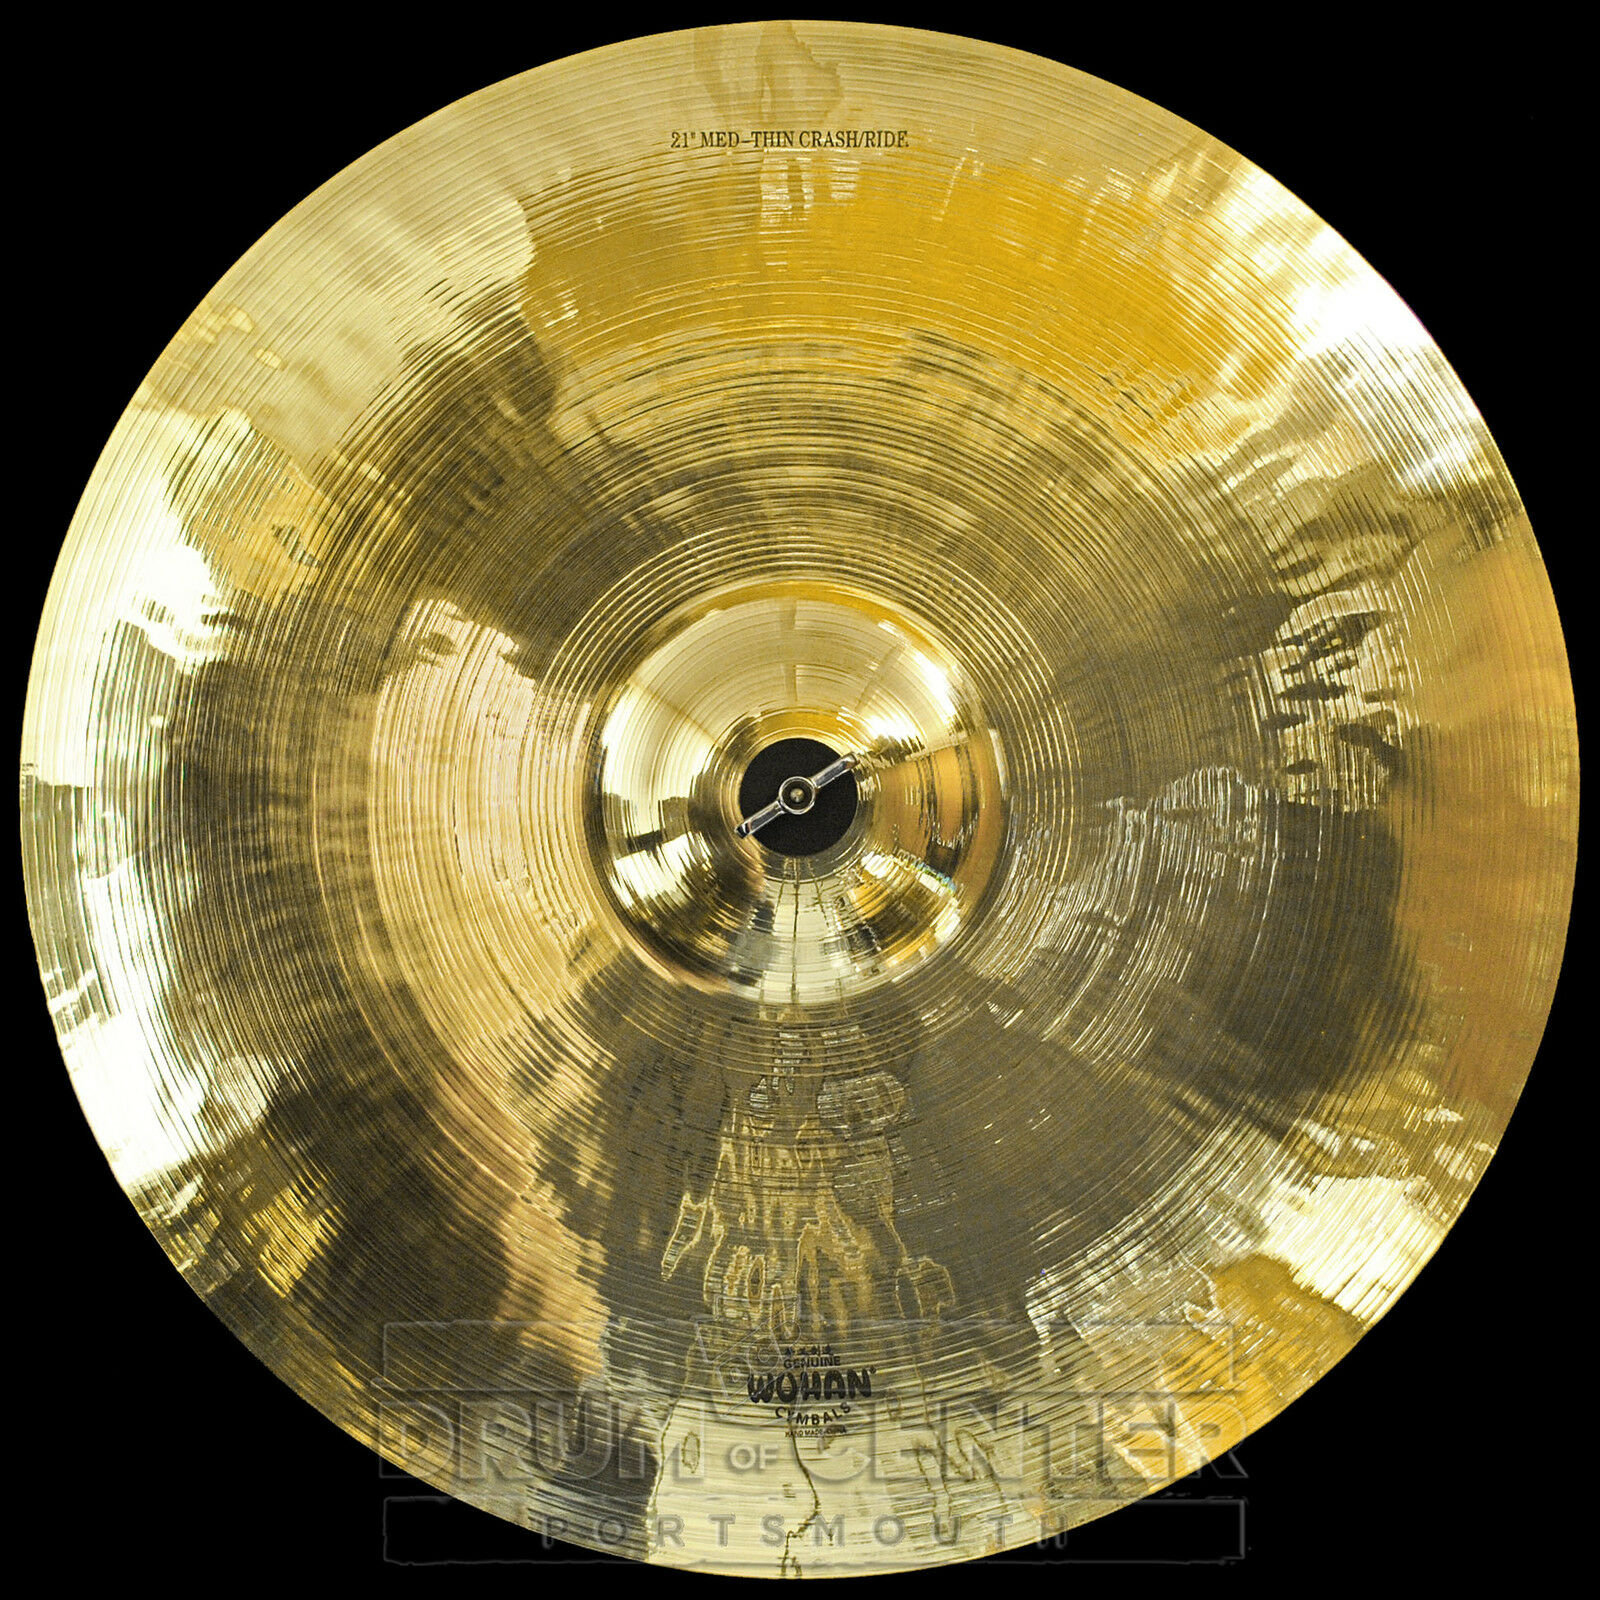 Wuhan Medium Thin Crash Ride Cymbal 21  - Video Demo